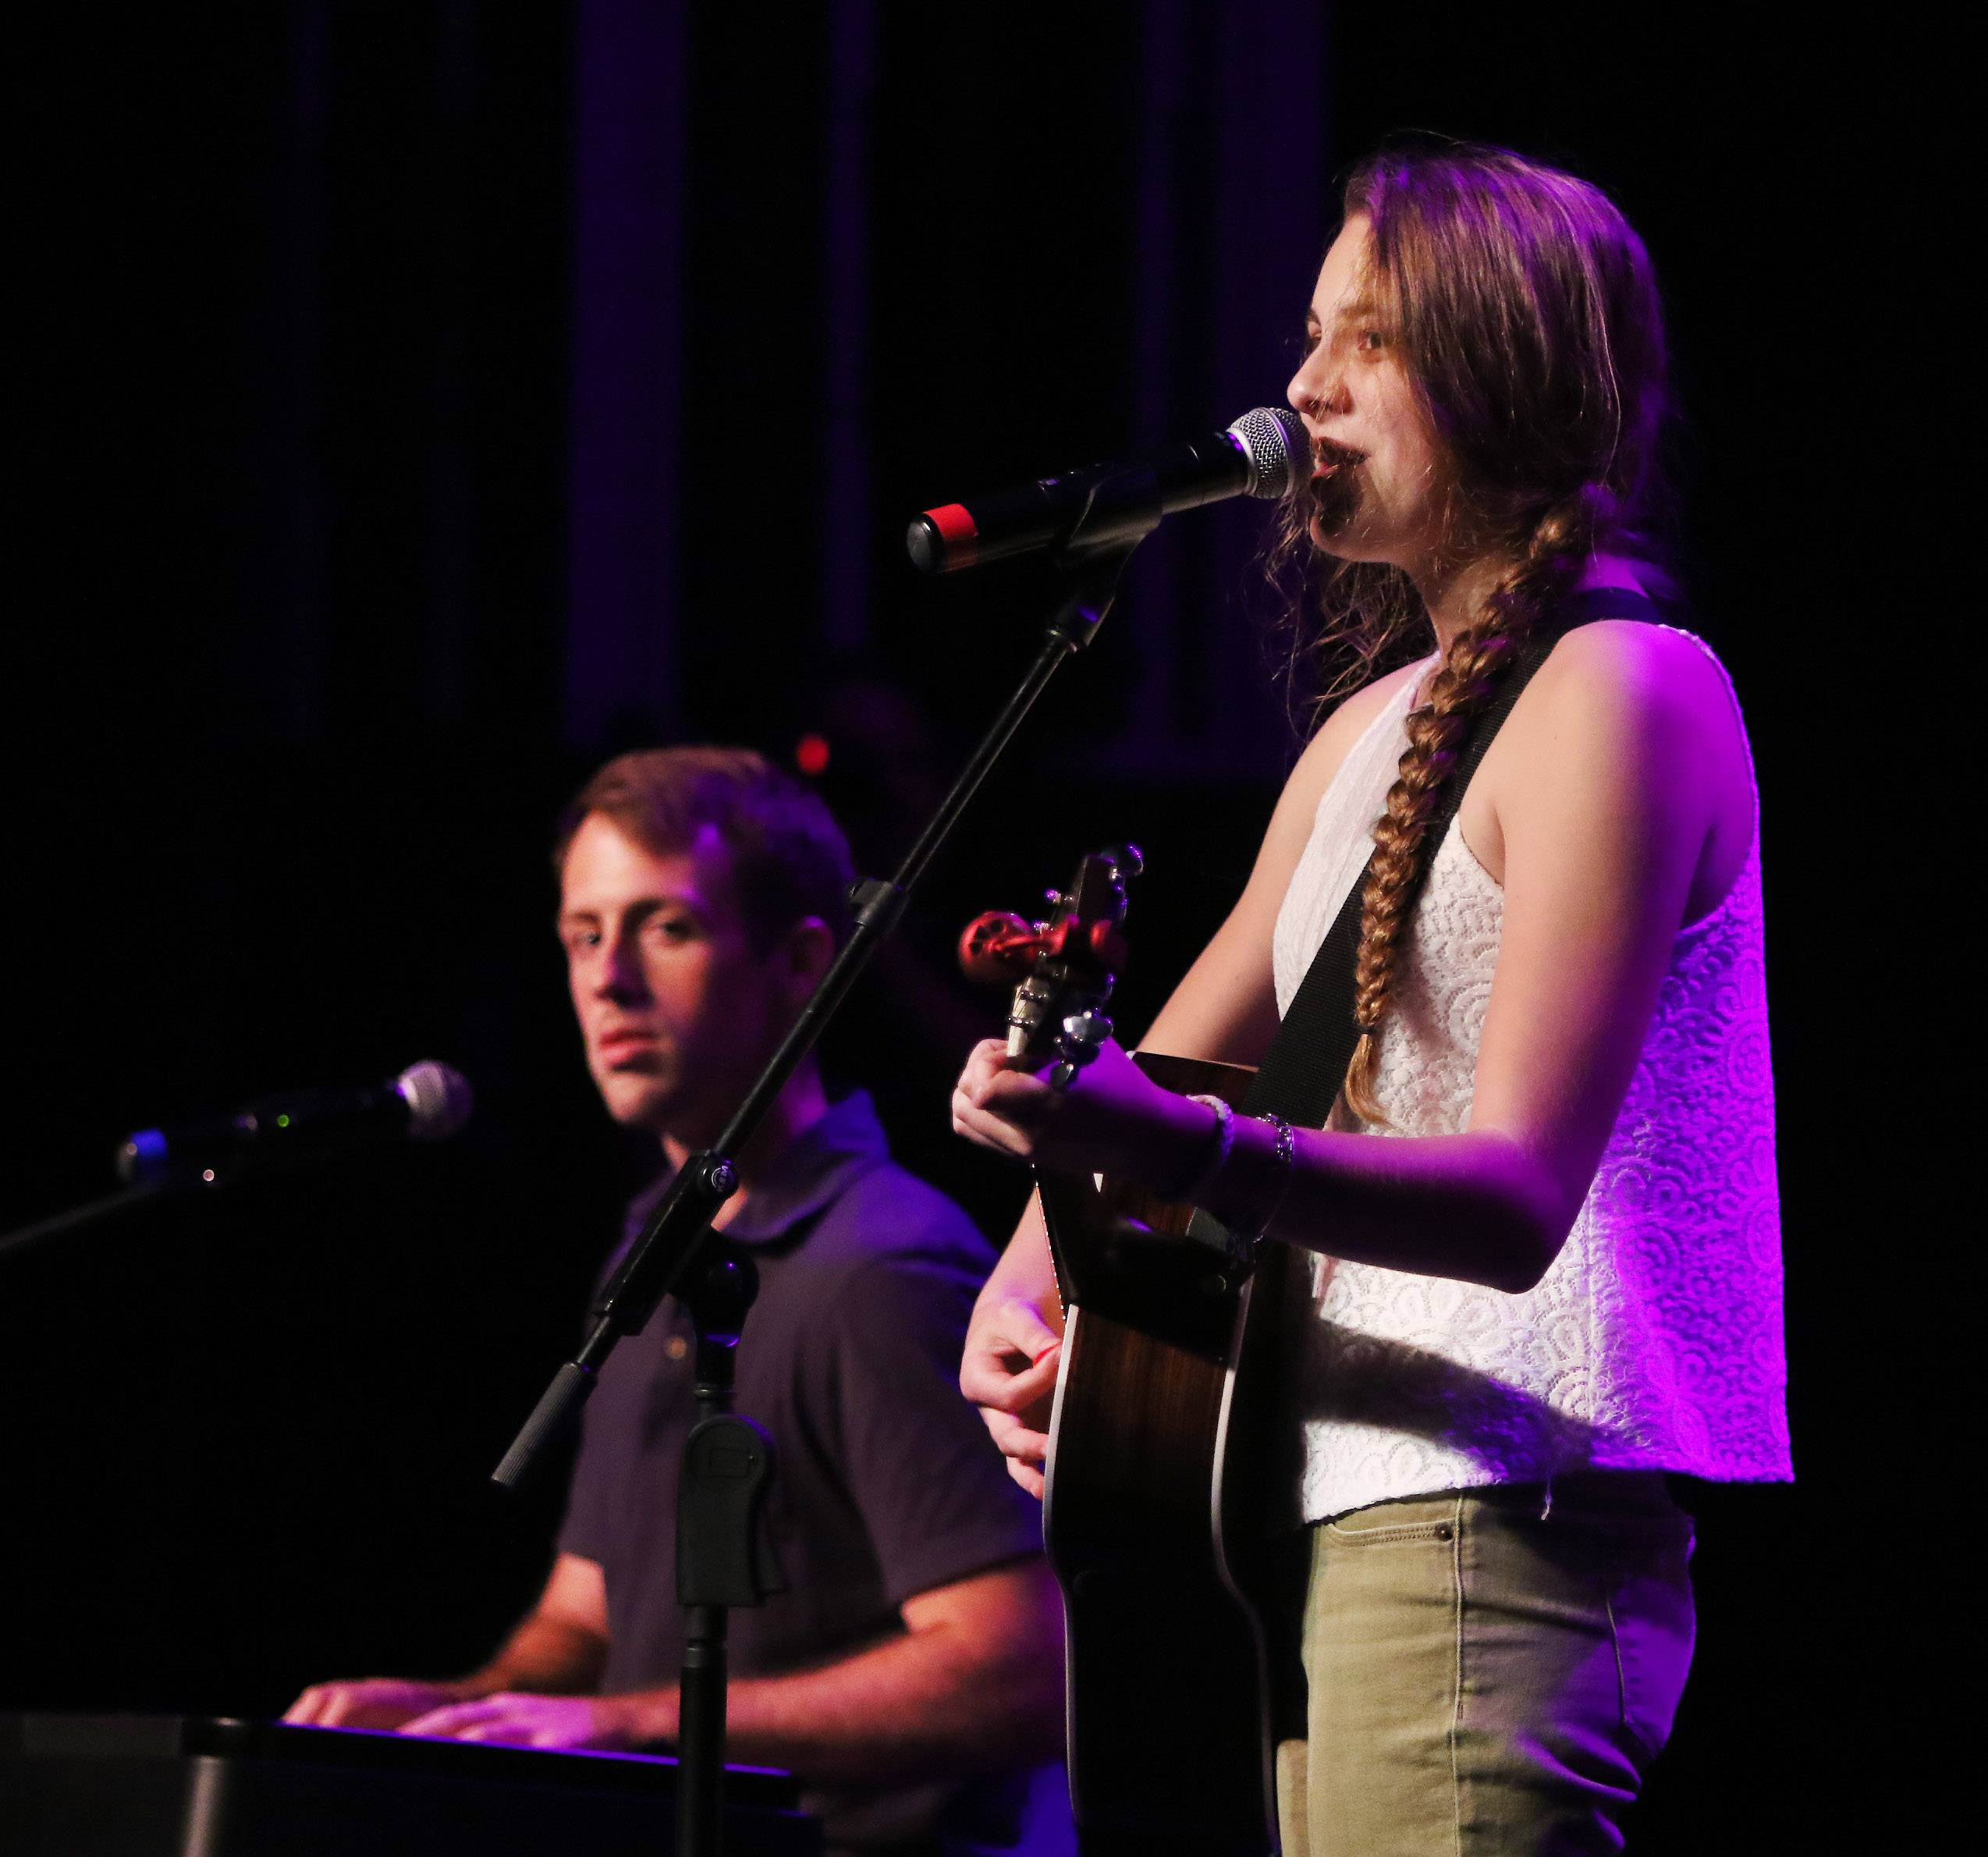 Tom and Olivia of Aurora perform during the Suburban Chicago's Got Talent competition Sunday at Prairie Center for the Arts in Schaumburg. The winners will be announced at the Taste of Arlington Heights on Saturday, Aug. 5.